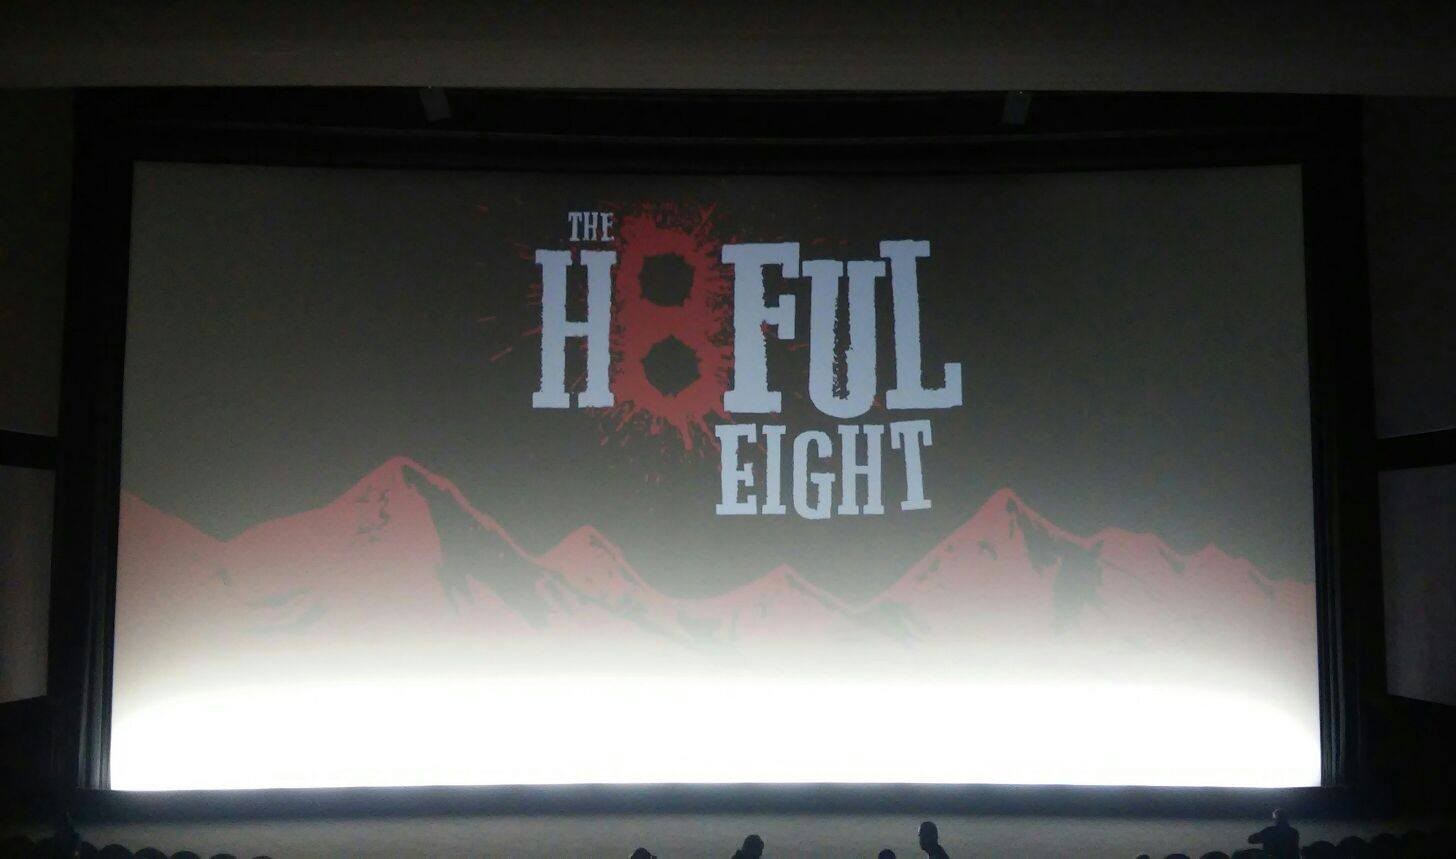 SPECIALE VERO CINEMA - The Hateful Eight, l'atto d'amore in 70mm